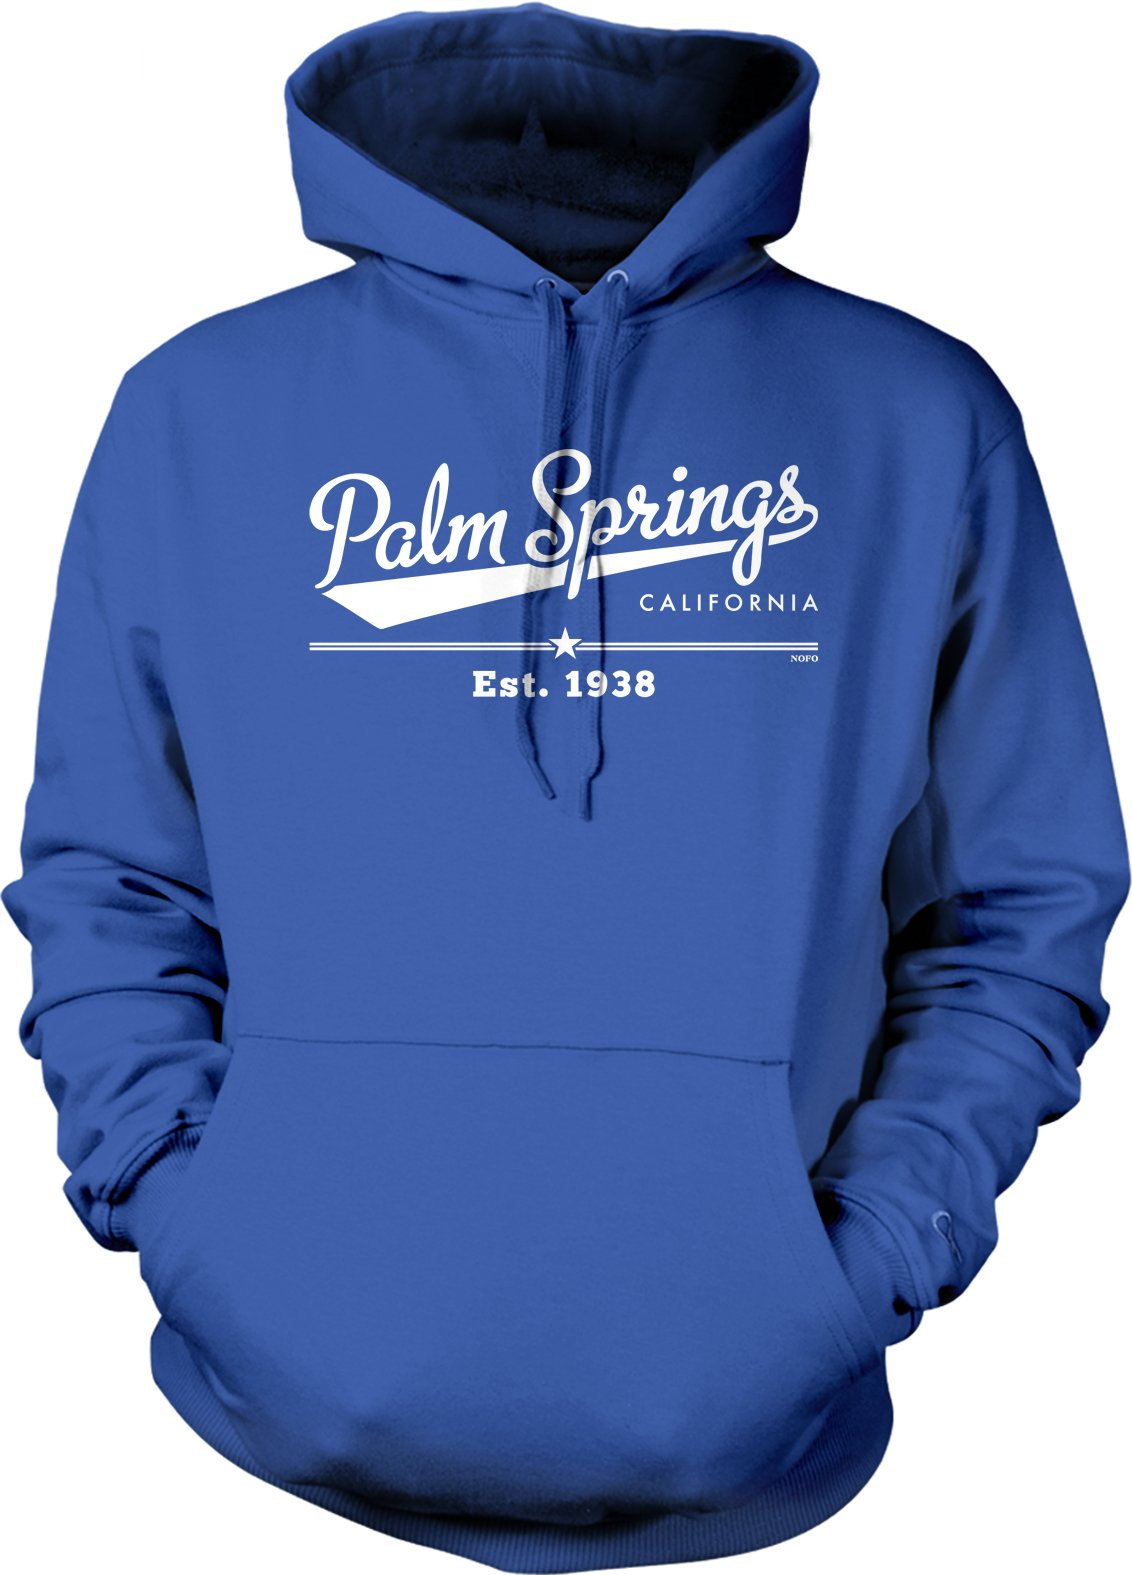 Palm Springs California Est 1938 Hooded Shirts